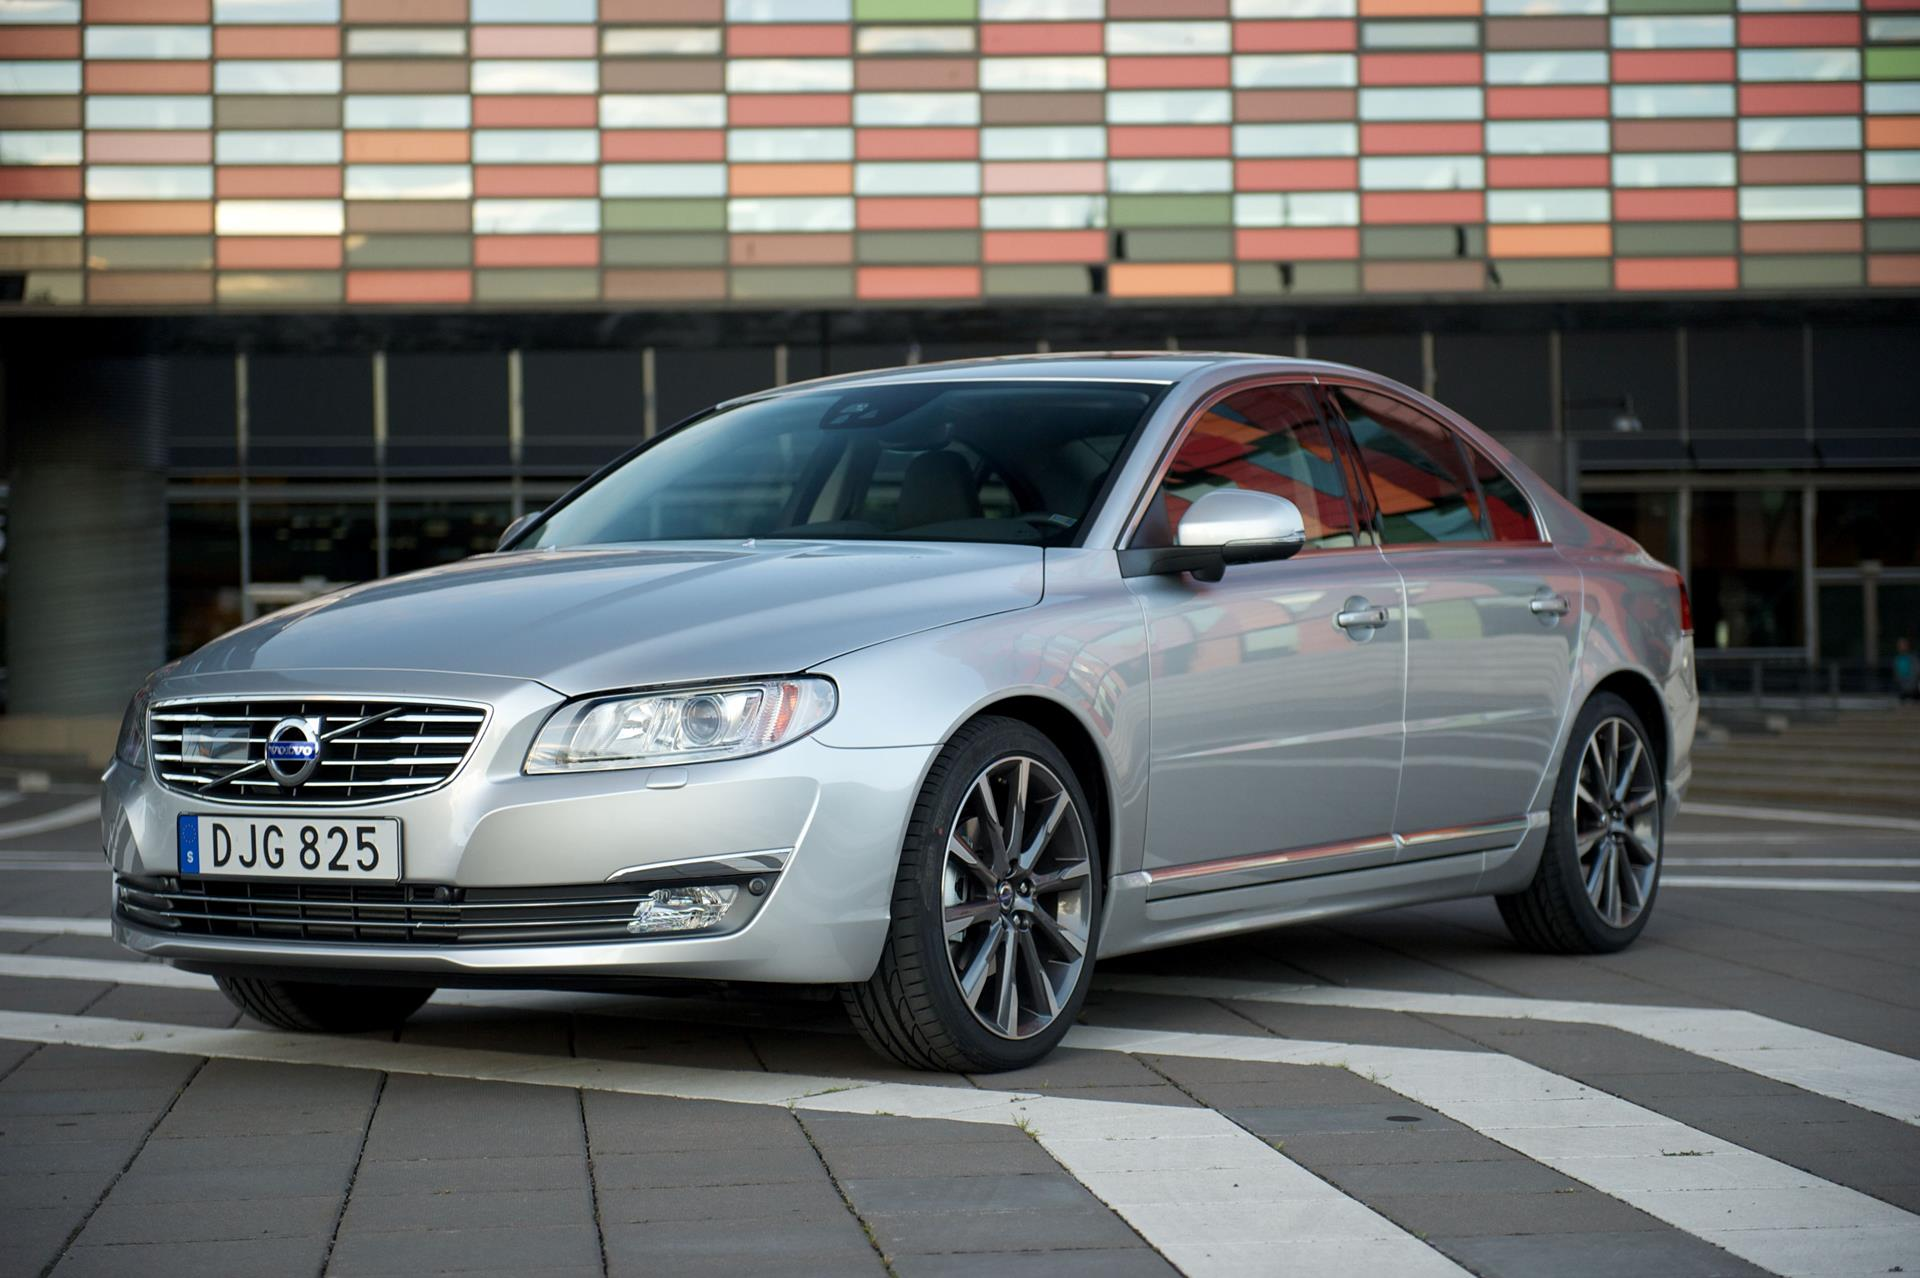 2015 Volvo S80 News and Information | conceptcarz.com